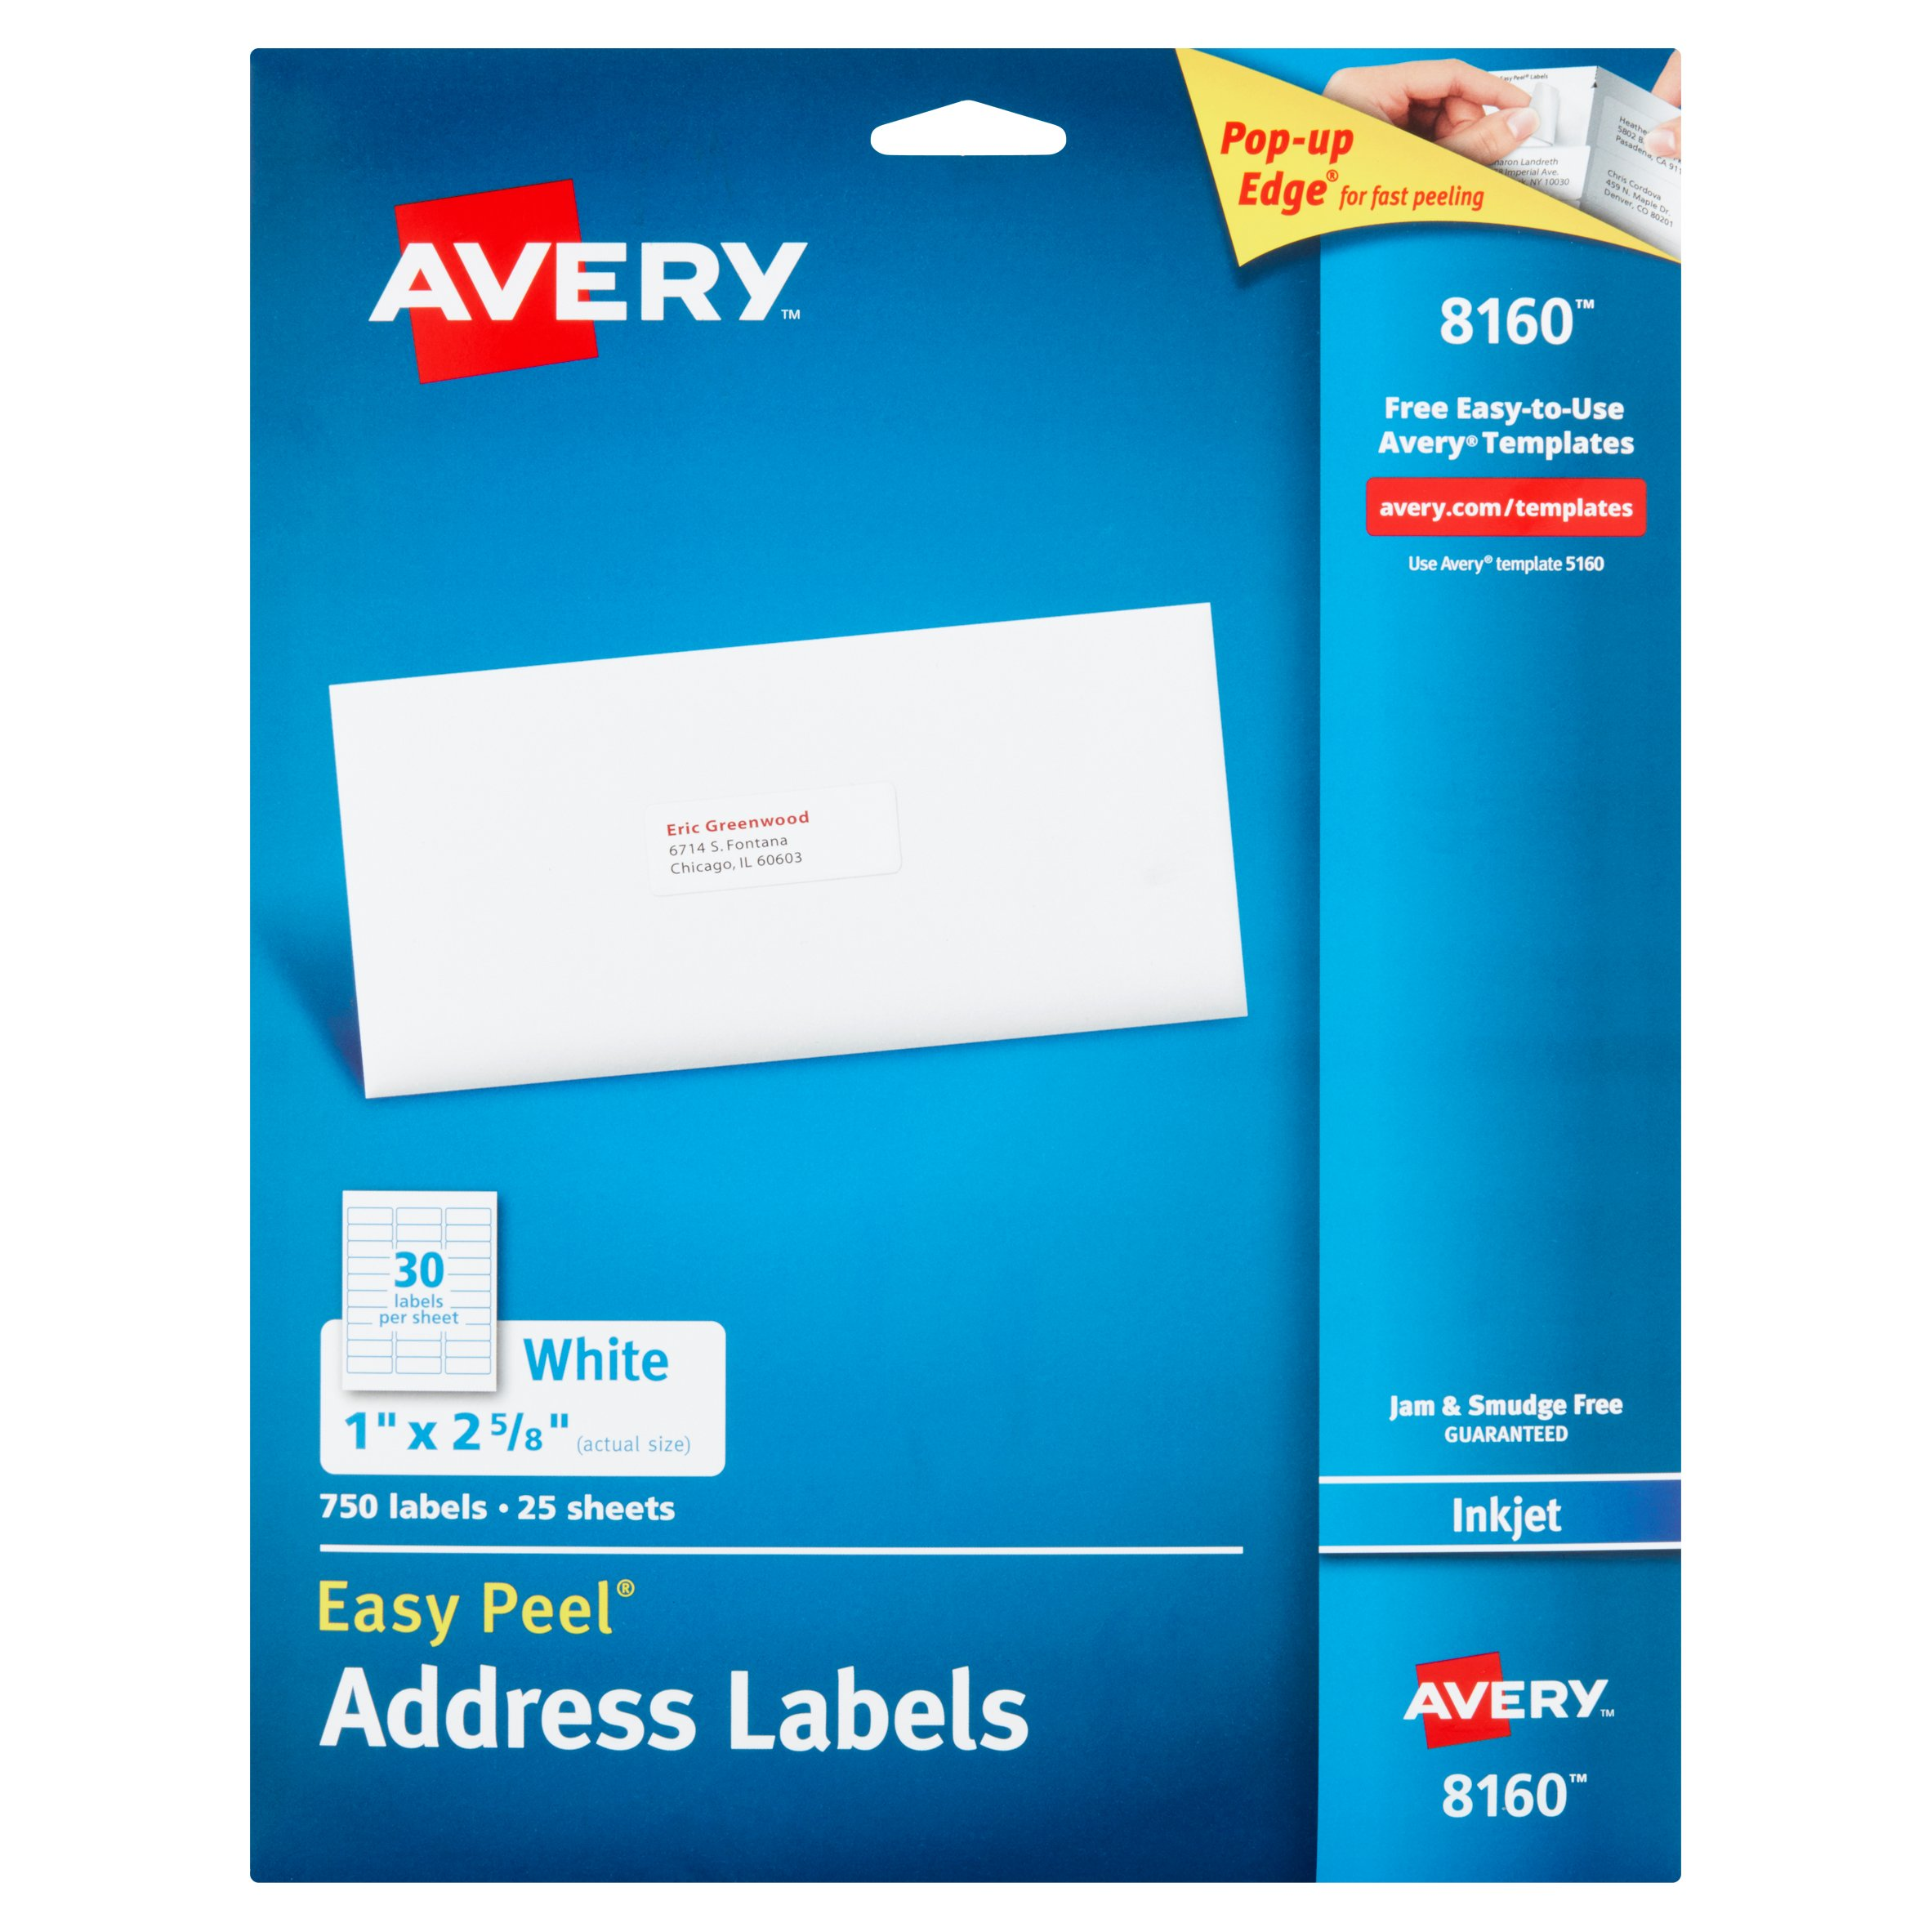 Avery 8160 Easy Peel White Inkjet Address Labels, 750 count by Avery Products Corporation